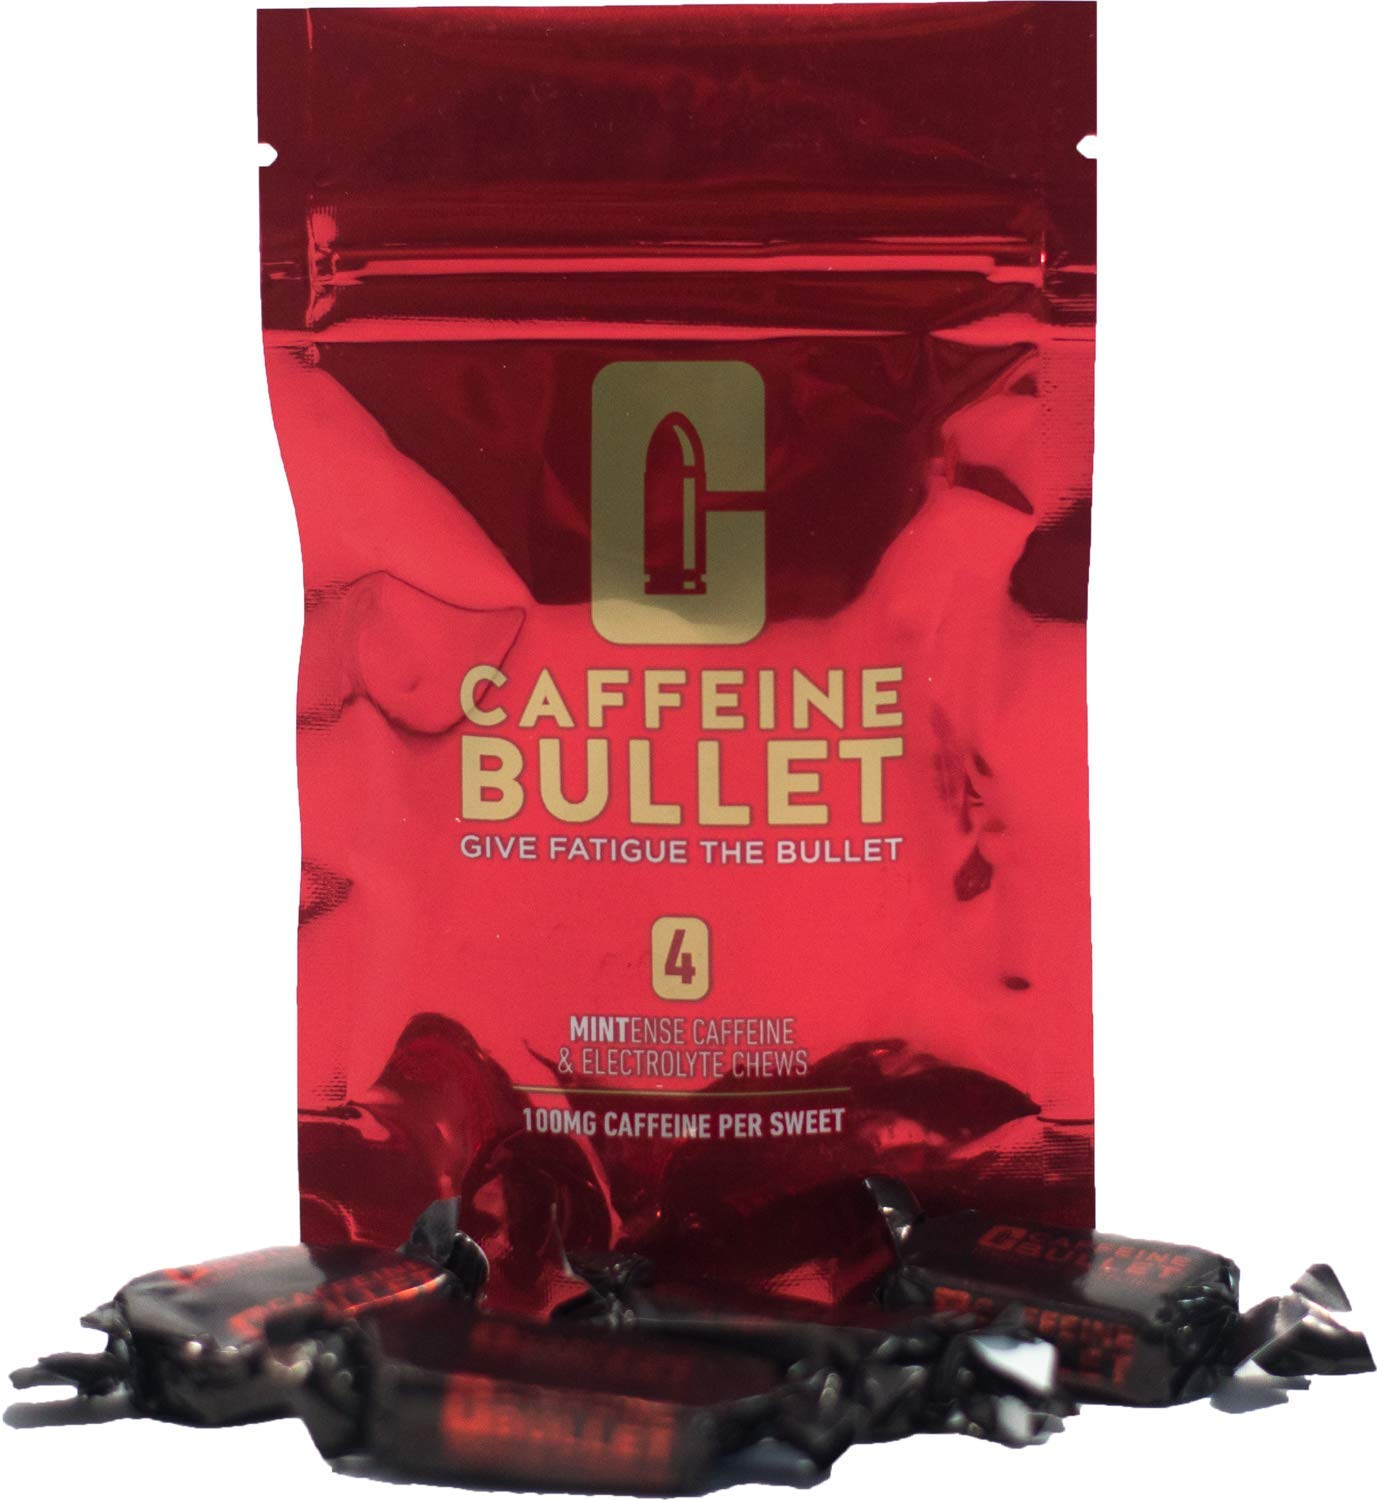 Caffeine Bullet Caffeine and Electrolyte Chews – 100mg Energy Candy for Pre Gym Workout, Sports, Running Races and Cycling - Caffeine Supplements for High Intensity Energy Boost – Mint (10)